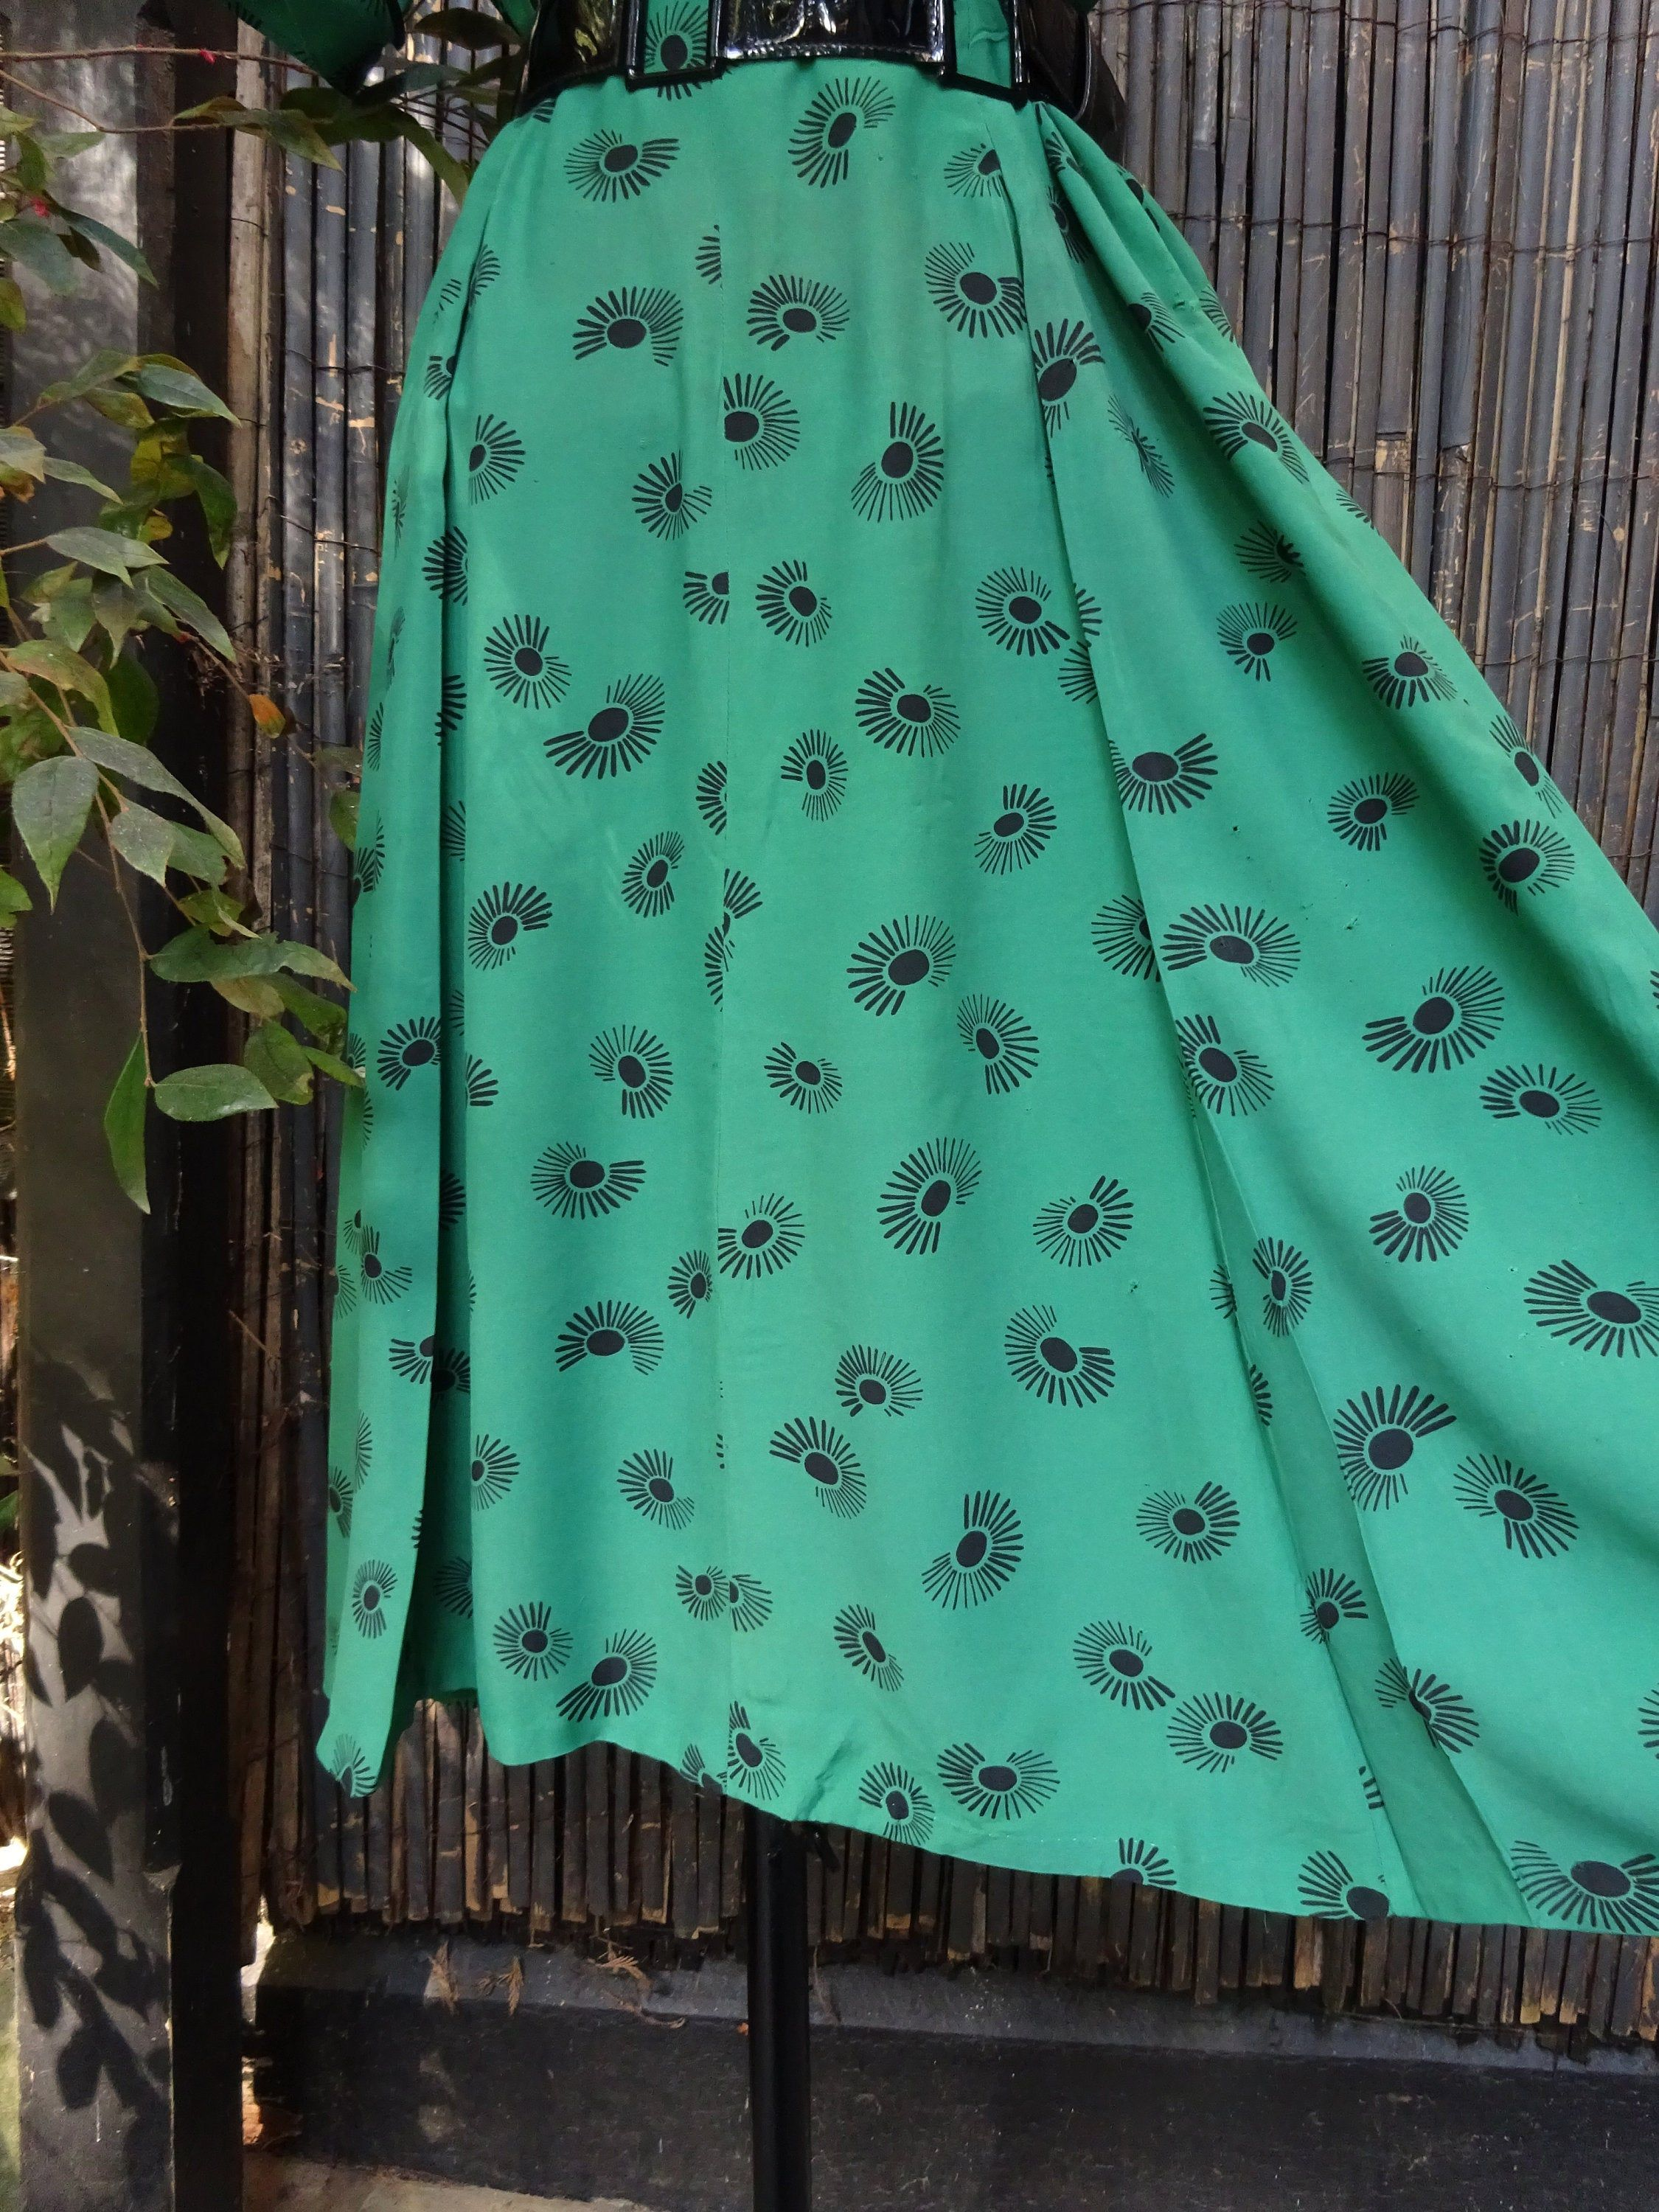 """""""This is a very Vivid coloured Kelly Green 1940s Rayon Day Dress. The design is like an eye with lashes! or a sun burst! The design is quite Art Deco. It has an edging round the neckline, cuffs and faux pockets which is a shiny ribbon. There are 4 original buttons down the front and it has a side placket with a zipper(eclair). It has 2 pleats at the back of the skirt. It is shown cinched in with a patent belt which is not included in the sale. Measurements;- Bust up 38\"""" to 40\"""" Waist up to 34\"""""""